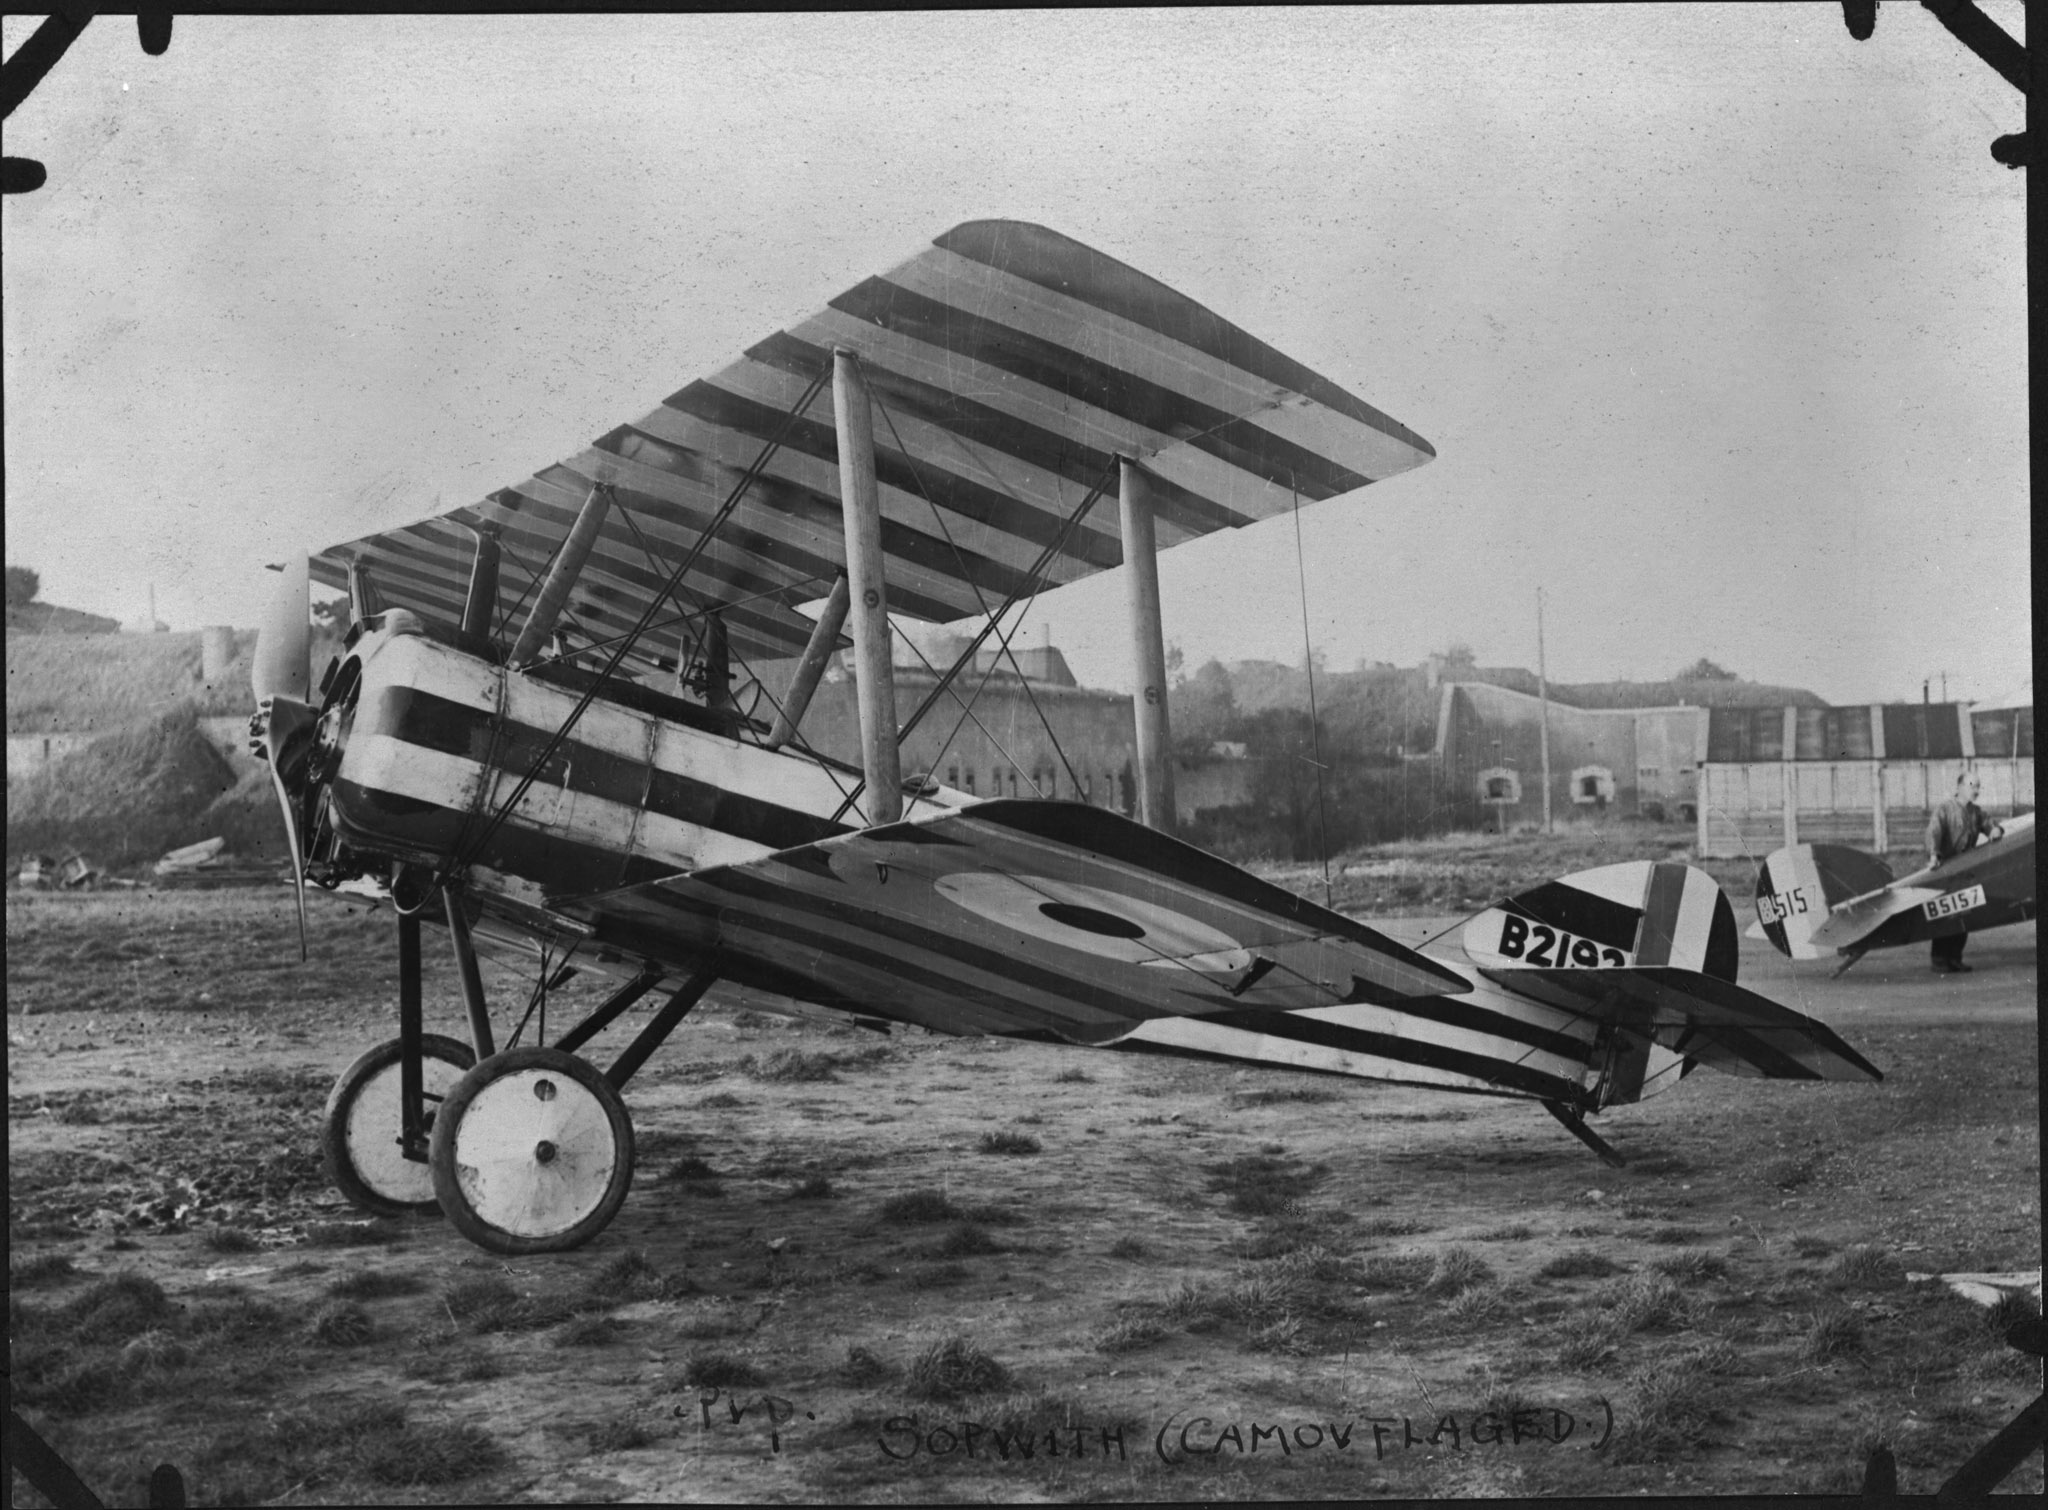 Un Sopwith Pup. Le 3e Escadron du Royal Navy Air Service, qui était équipé d'appareils Pup, était l'un des quatre escadrons du RNAS mis temporairement à la disposition du Royal Flying Corps pendant la période qui a mené à la bataille de la crête de Vimy. Le 3e Escadron était sous le commandement du Canadien Redford « Red » Mulock. PHOTO : RE-20572, Archives du MDN